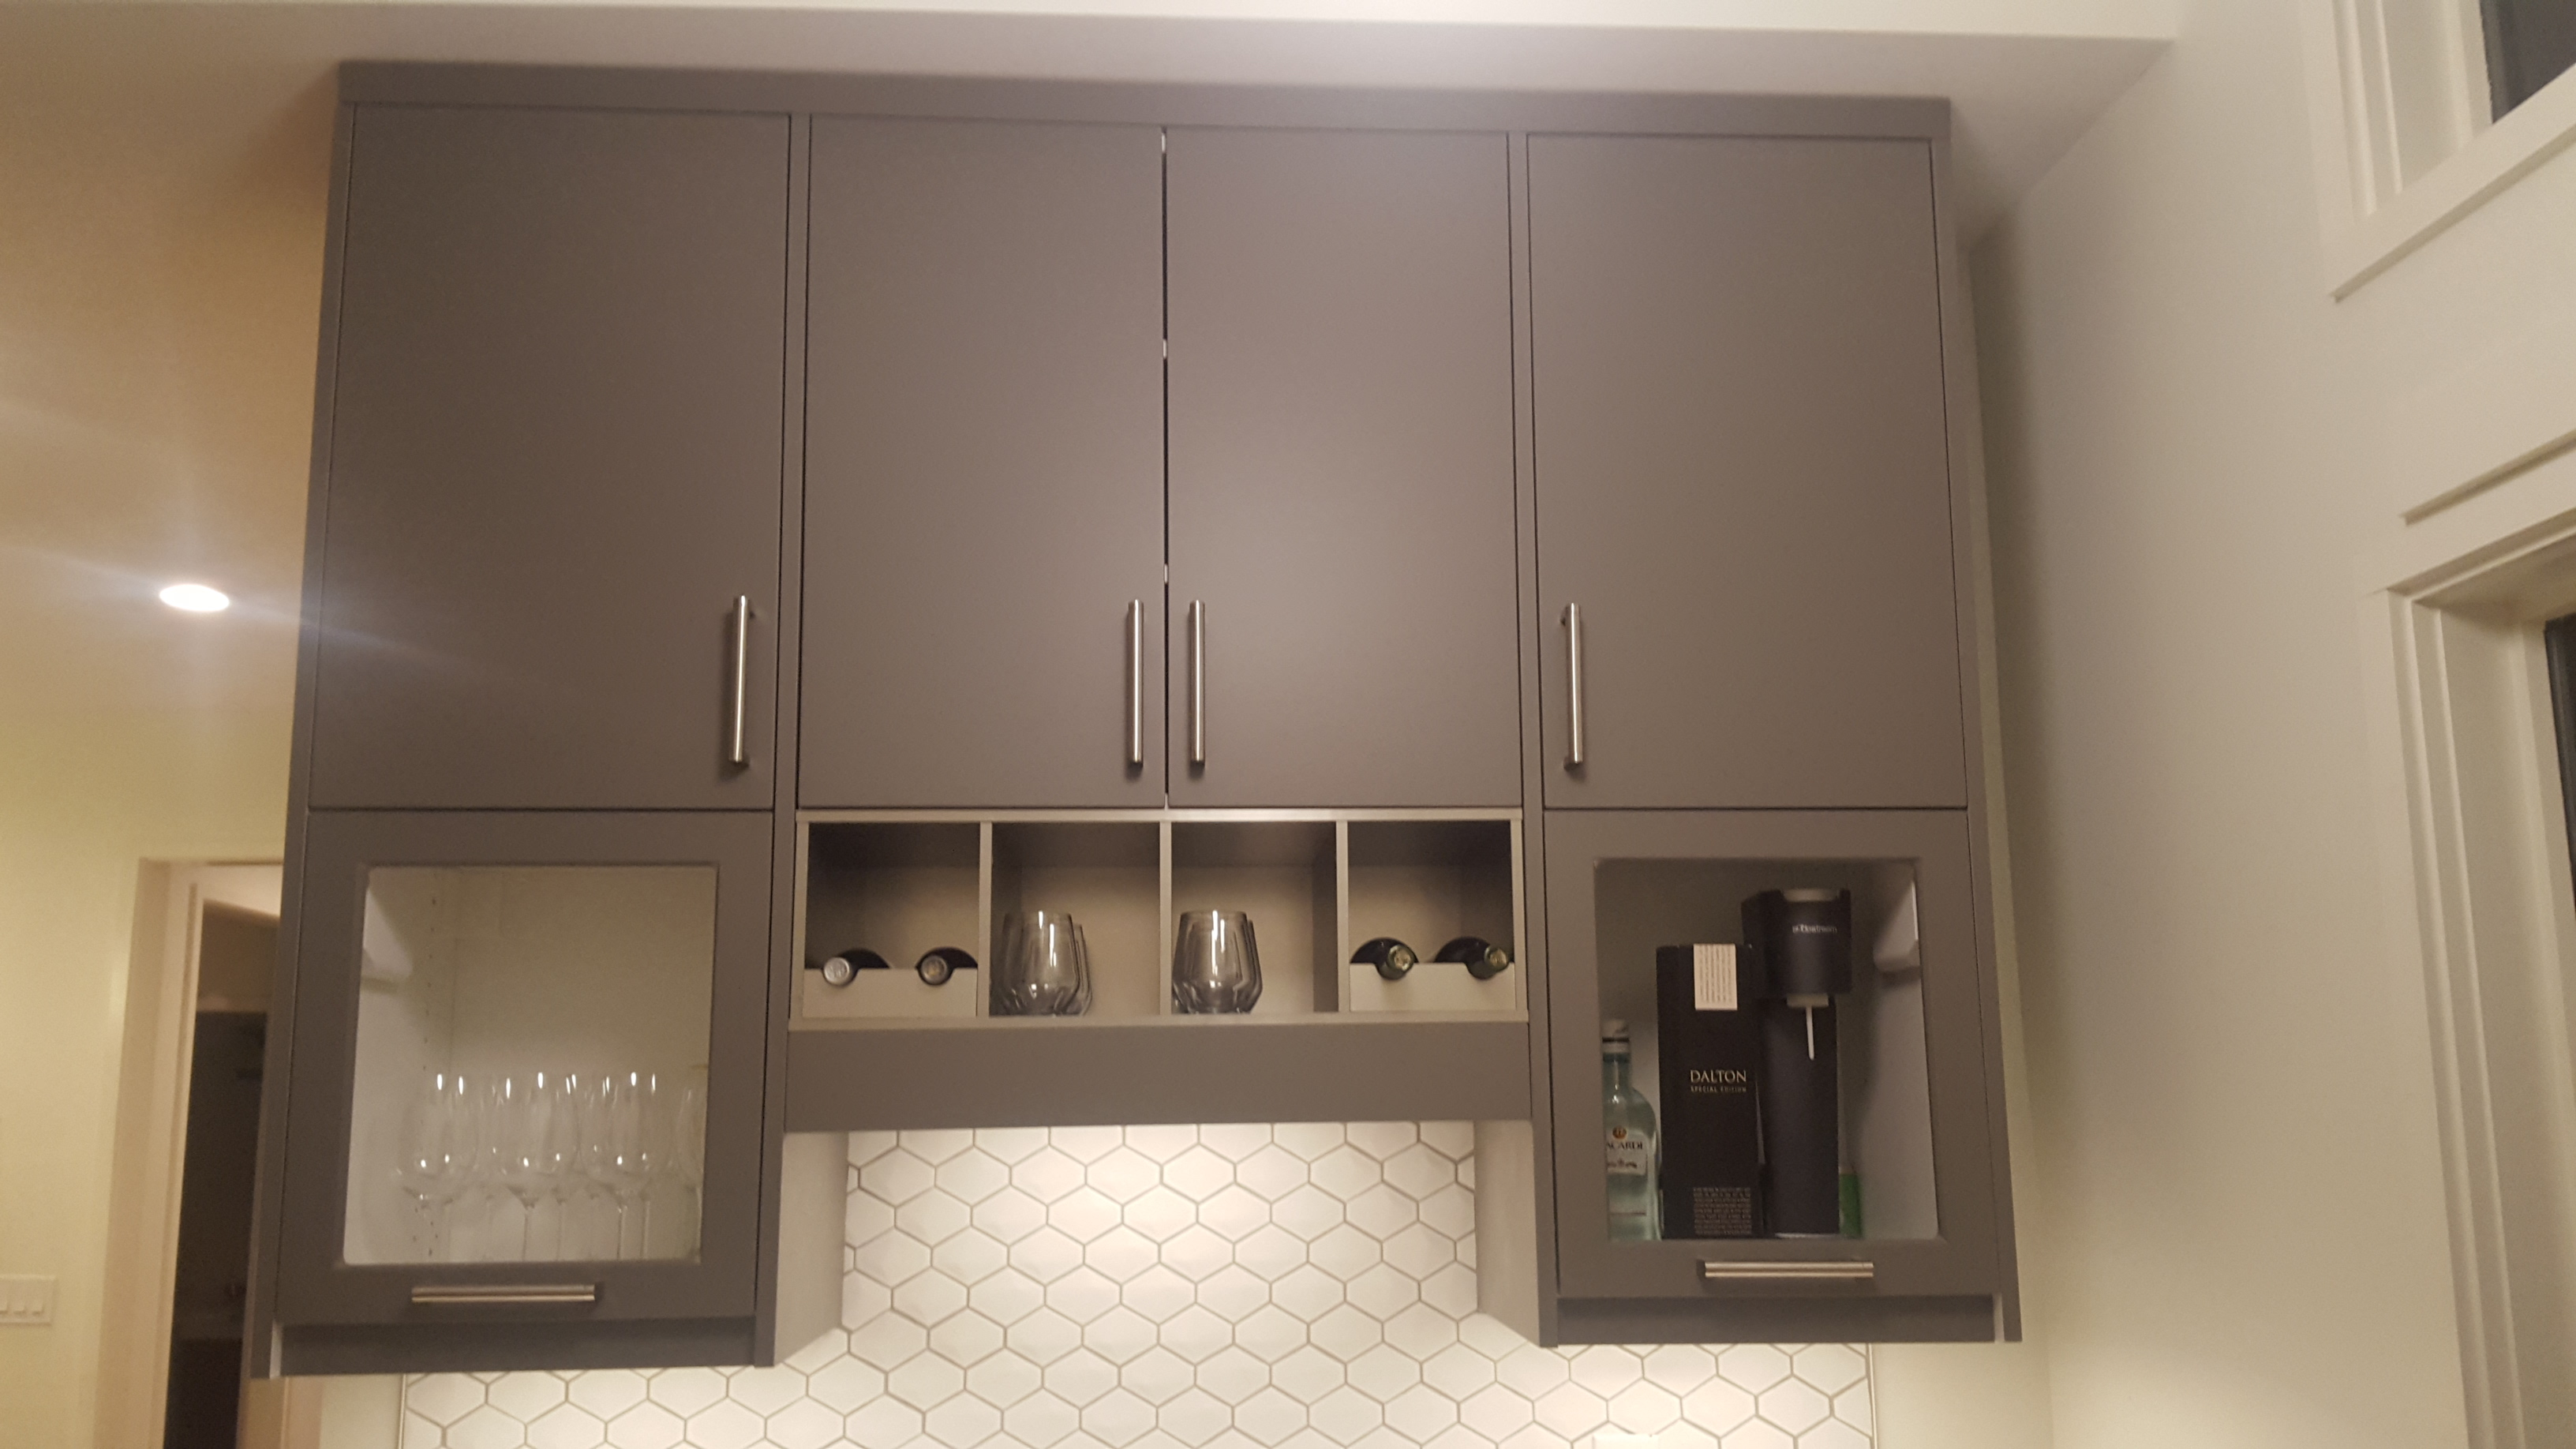 Does this classic atlanta bungalow have an ikea kitchen see the semihandmade doors in close up over the bar area eventelaan Choice Image